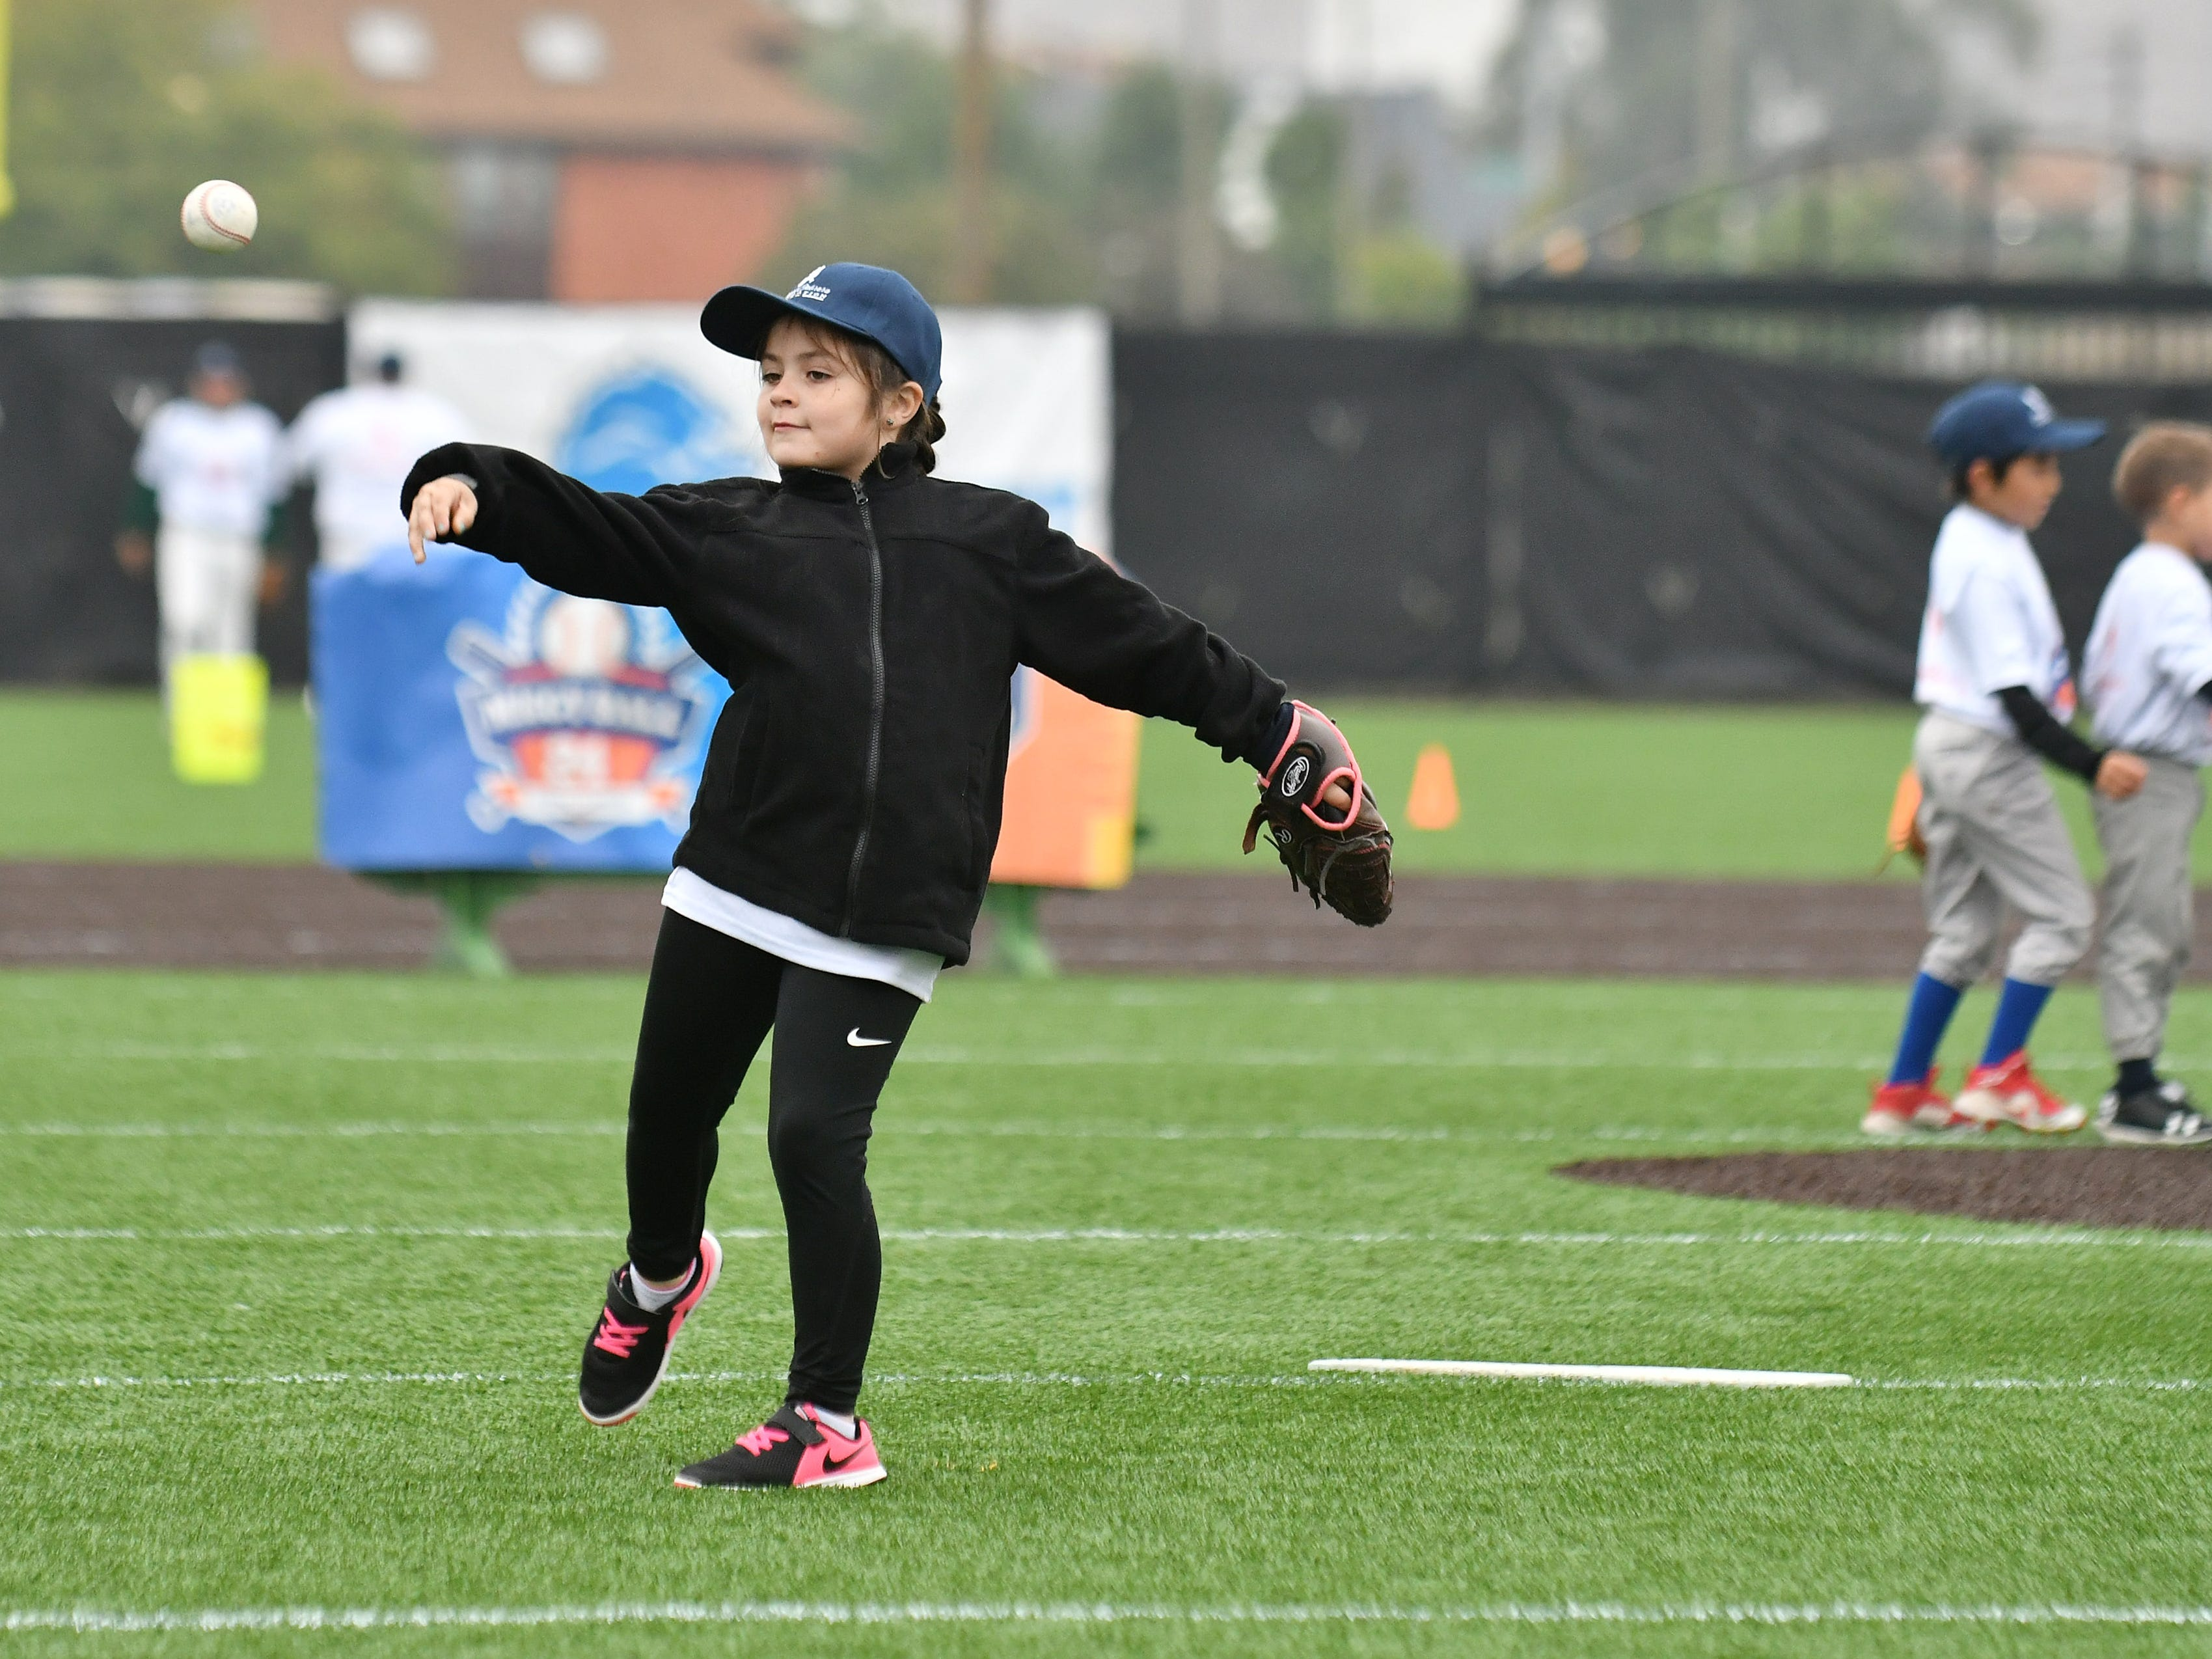 The only girl participant, Rosalie Plascencia, 7, of Detroit, throws a baseball in the pitching portion of the activities.